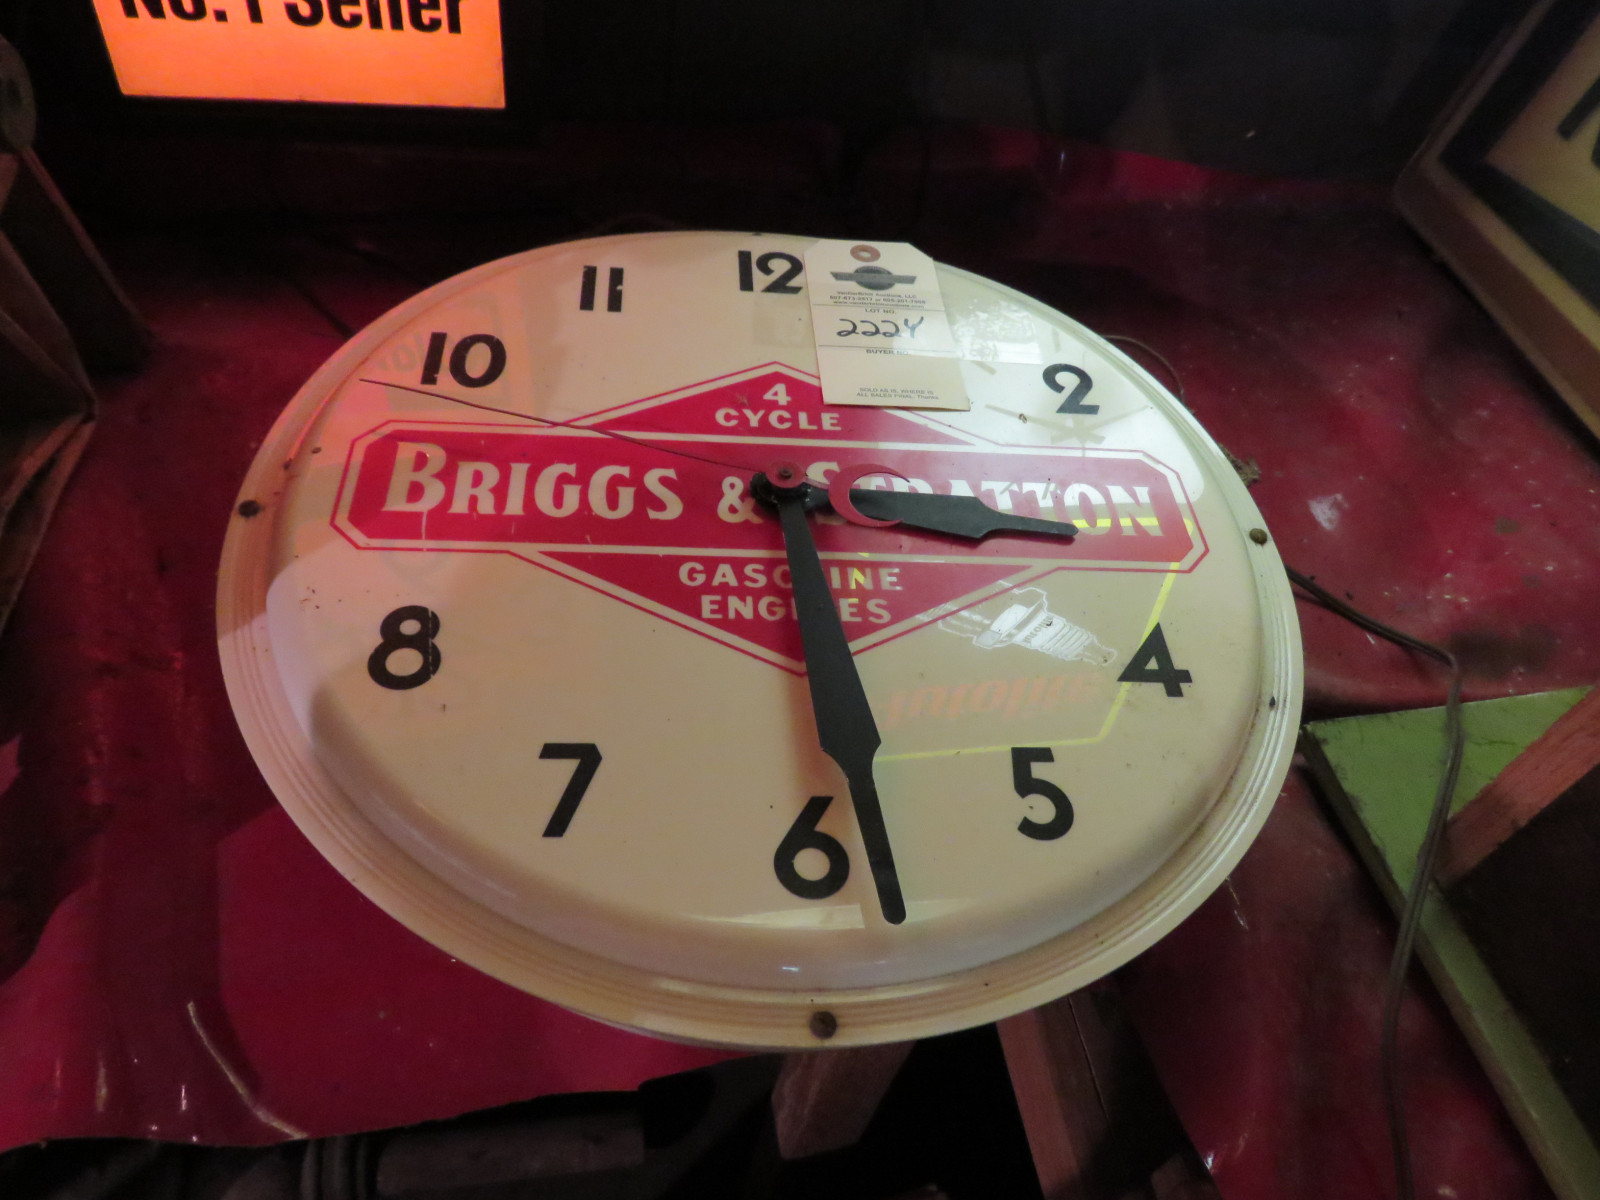 Briggs & Stratton Lighted Advertising Clock- Not Working - Image 1